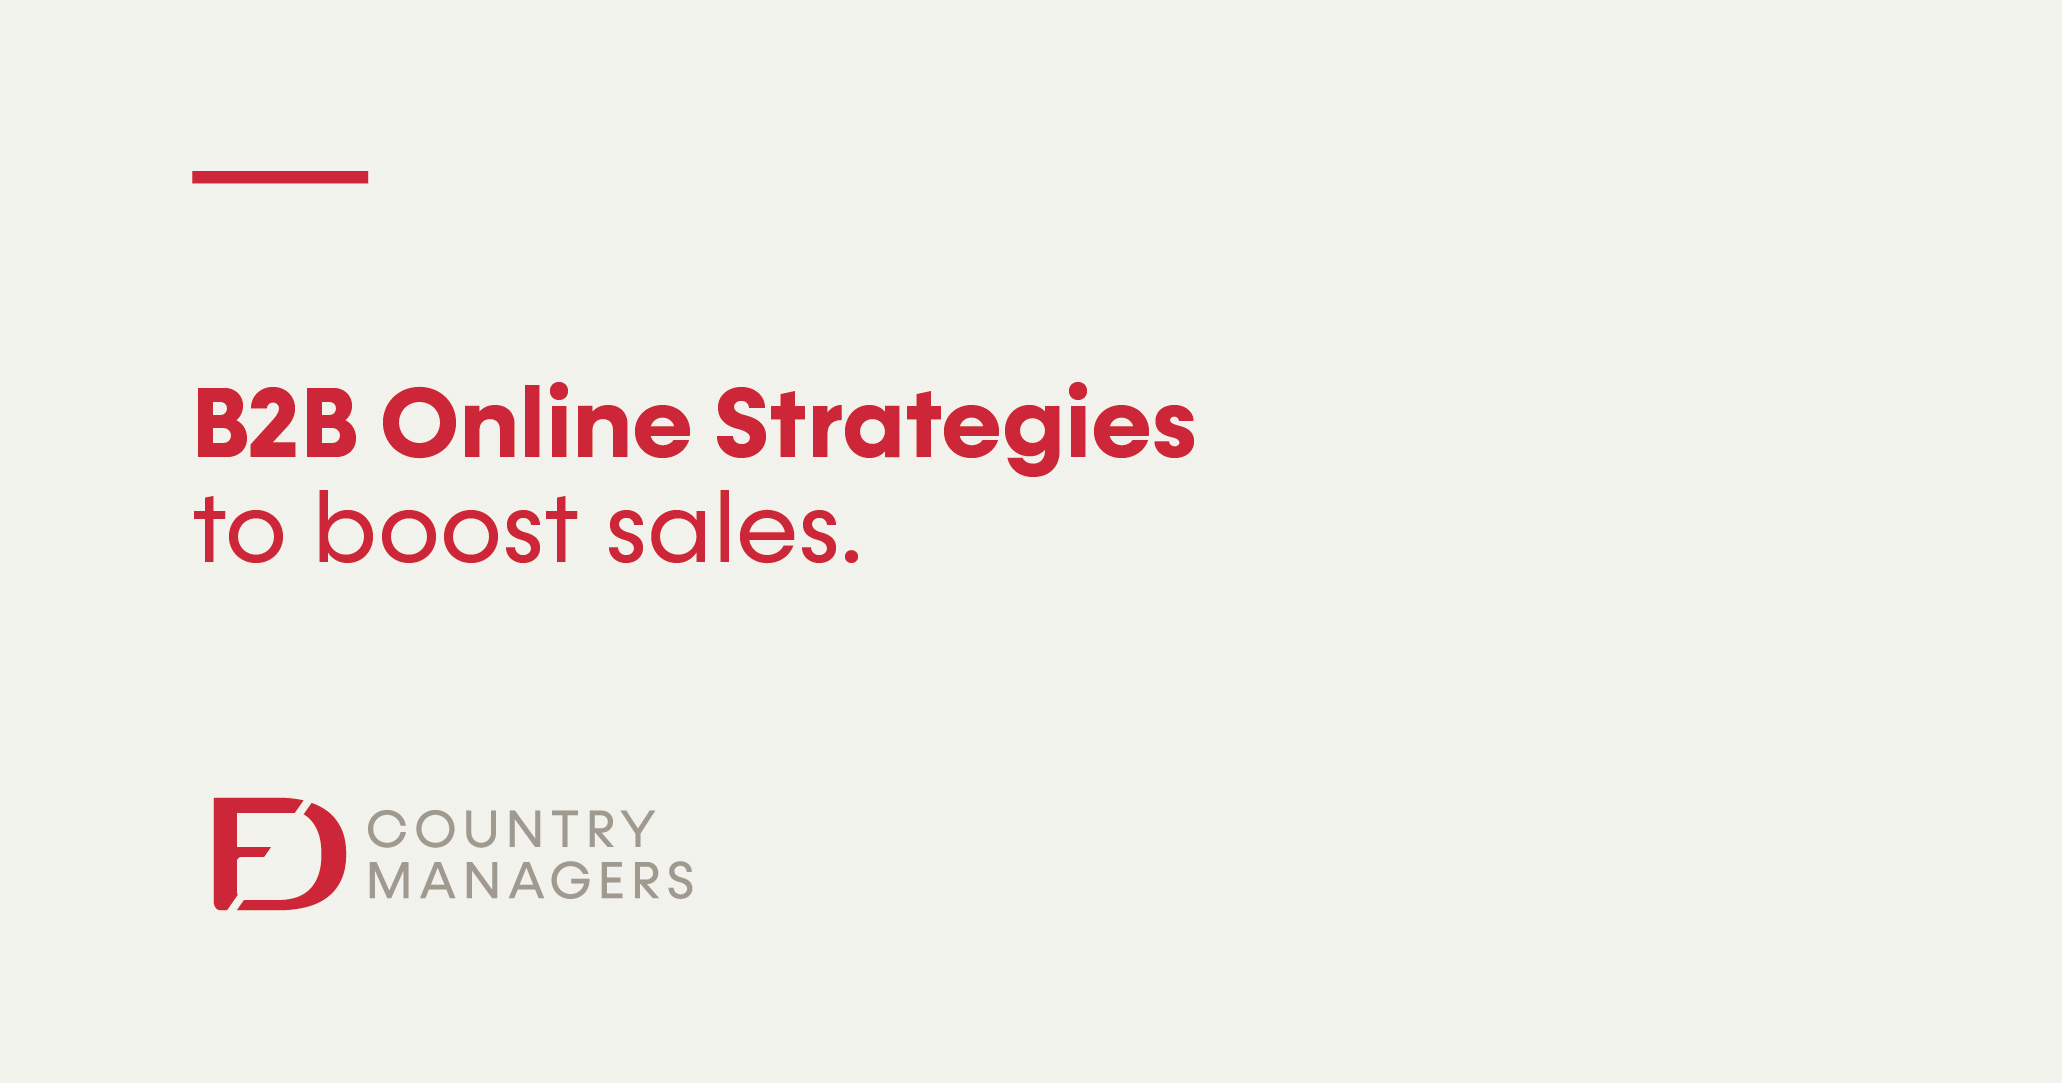 B2B Online Strategies to boost sales